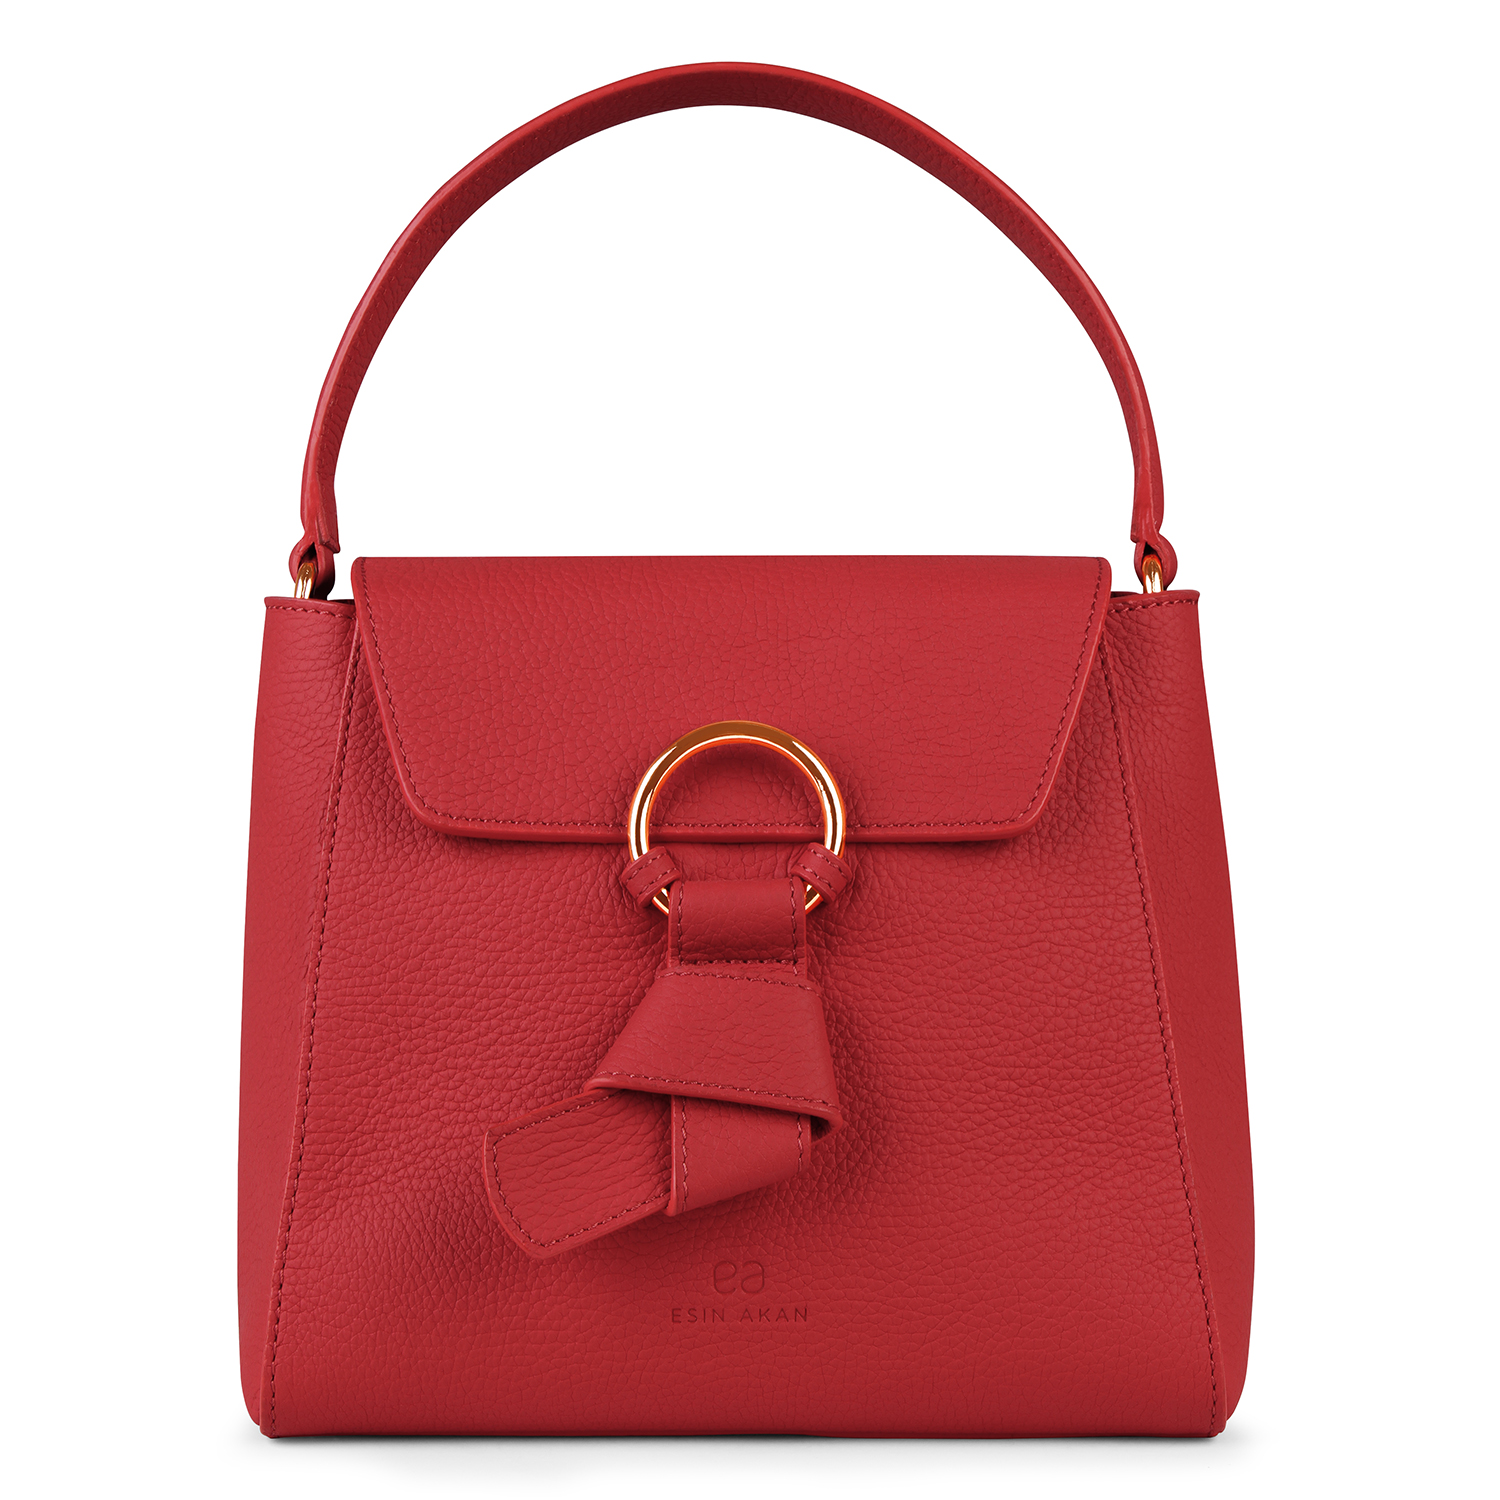 Midi Pimlico Cross-body Bag- Poppy by Esin Akan on curated-crowd.com